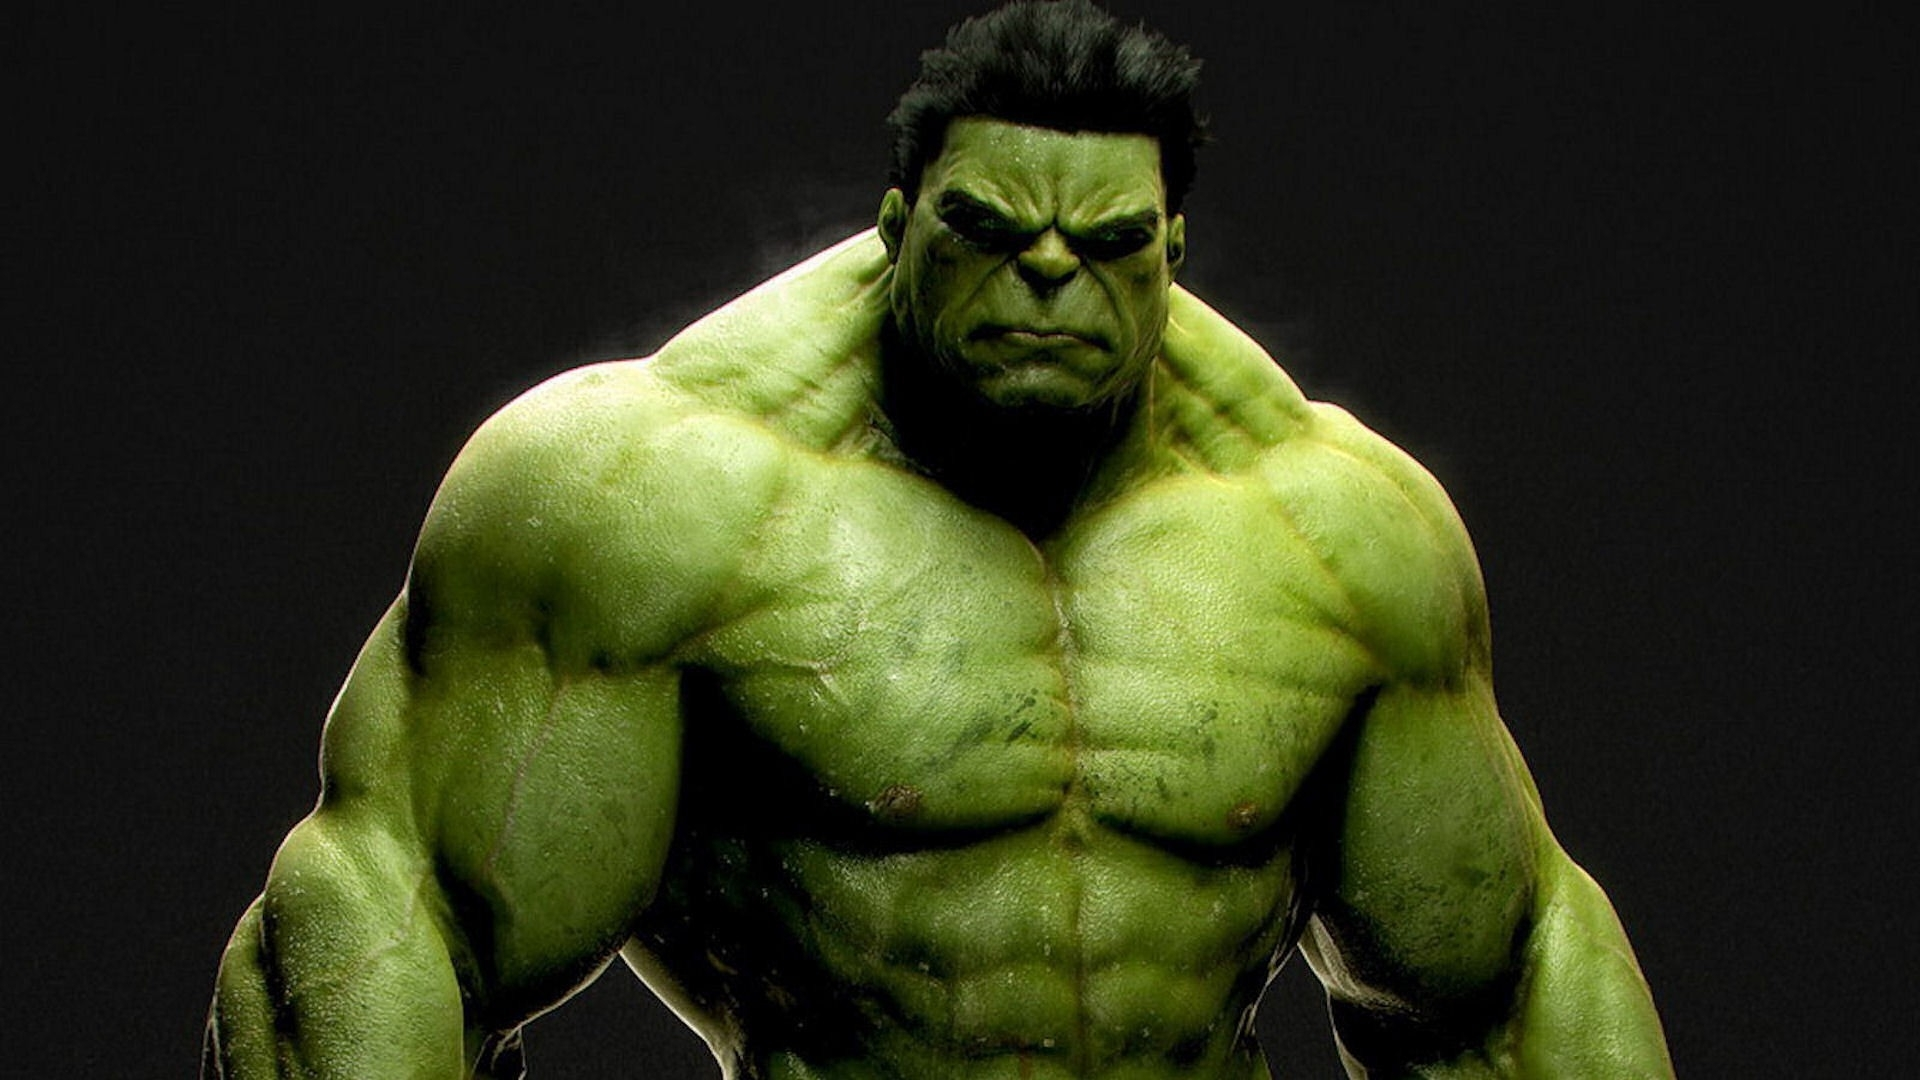 Incredible Hulk Wallpaper HD WallpaperSafari